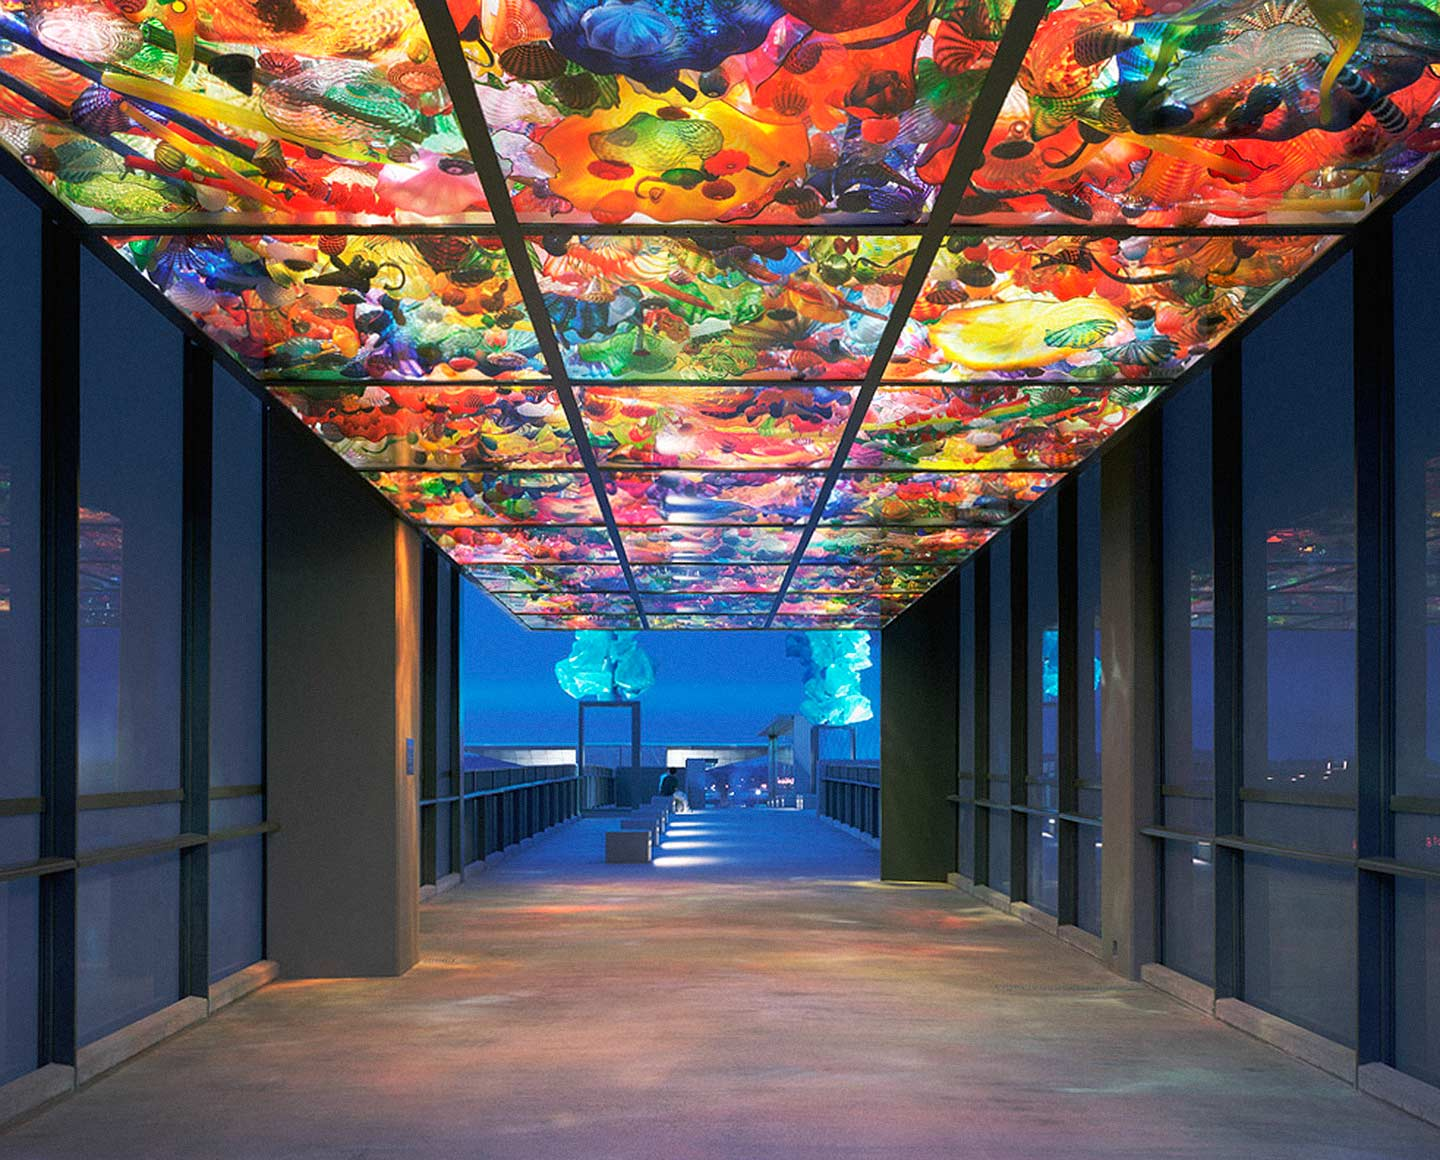 Chihuly Bridge Seaform Pavilion, designed by Andersson Wise